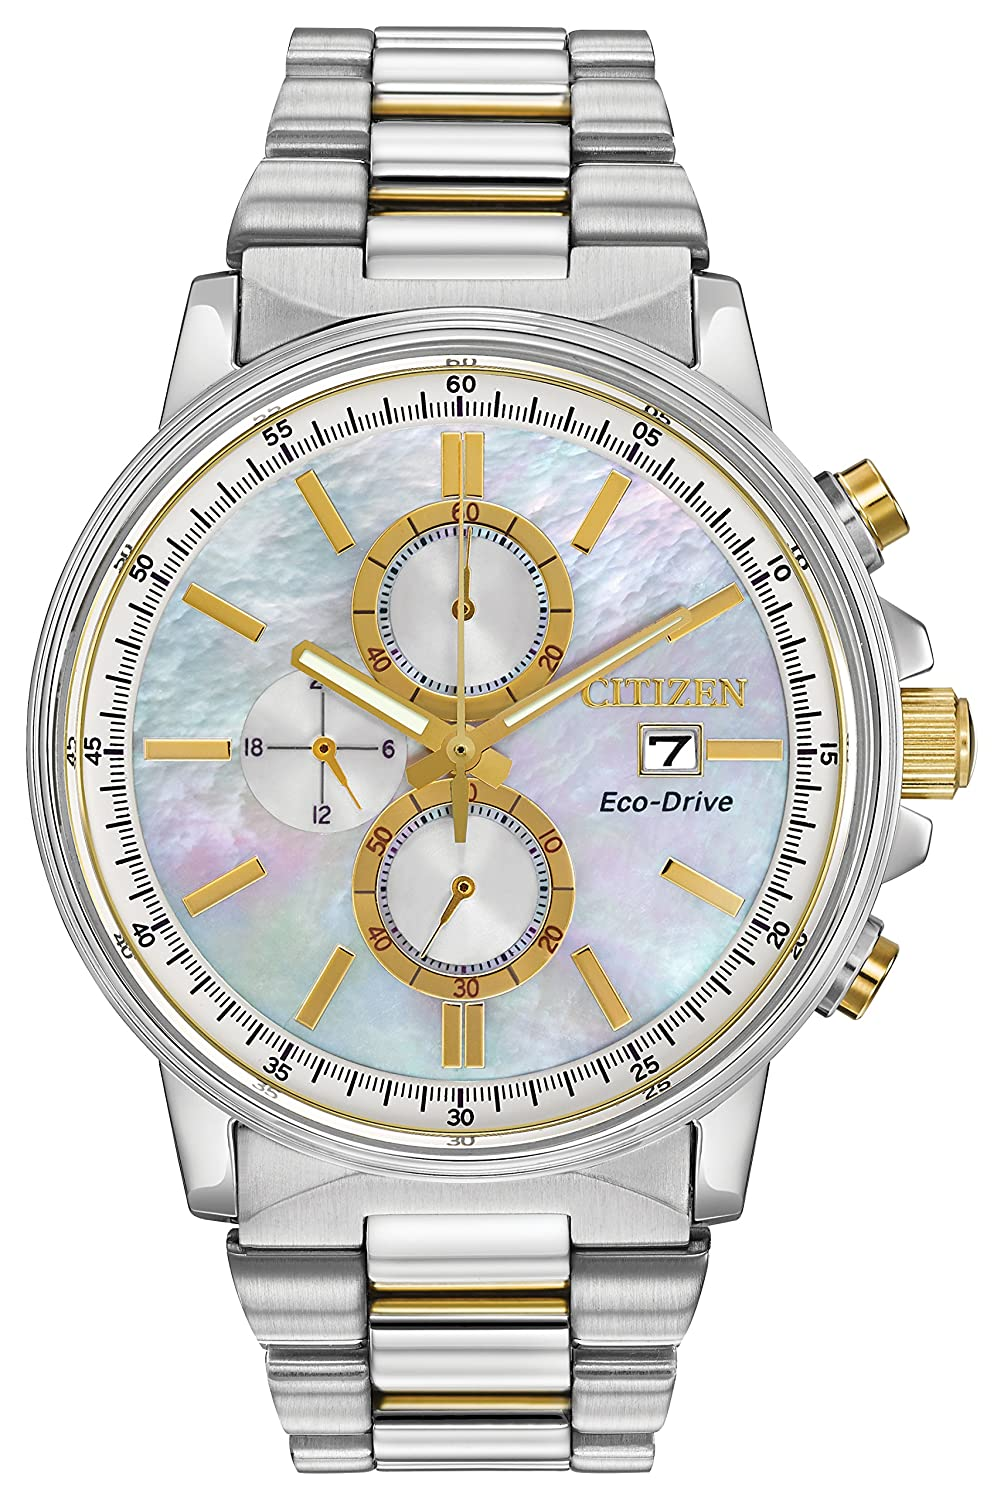 Citizen Eco-Drive Nighthawk Chronograph Stainless Steel – Two-Tone Women s watch FB3004-58D